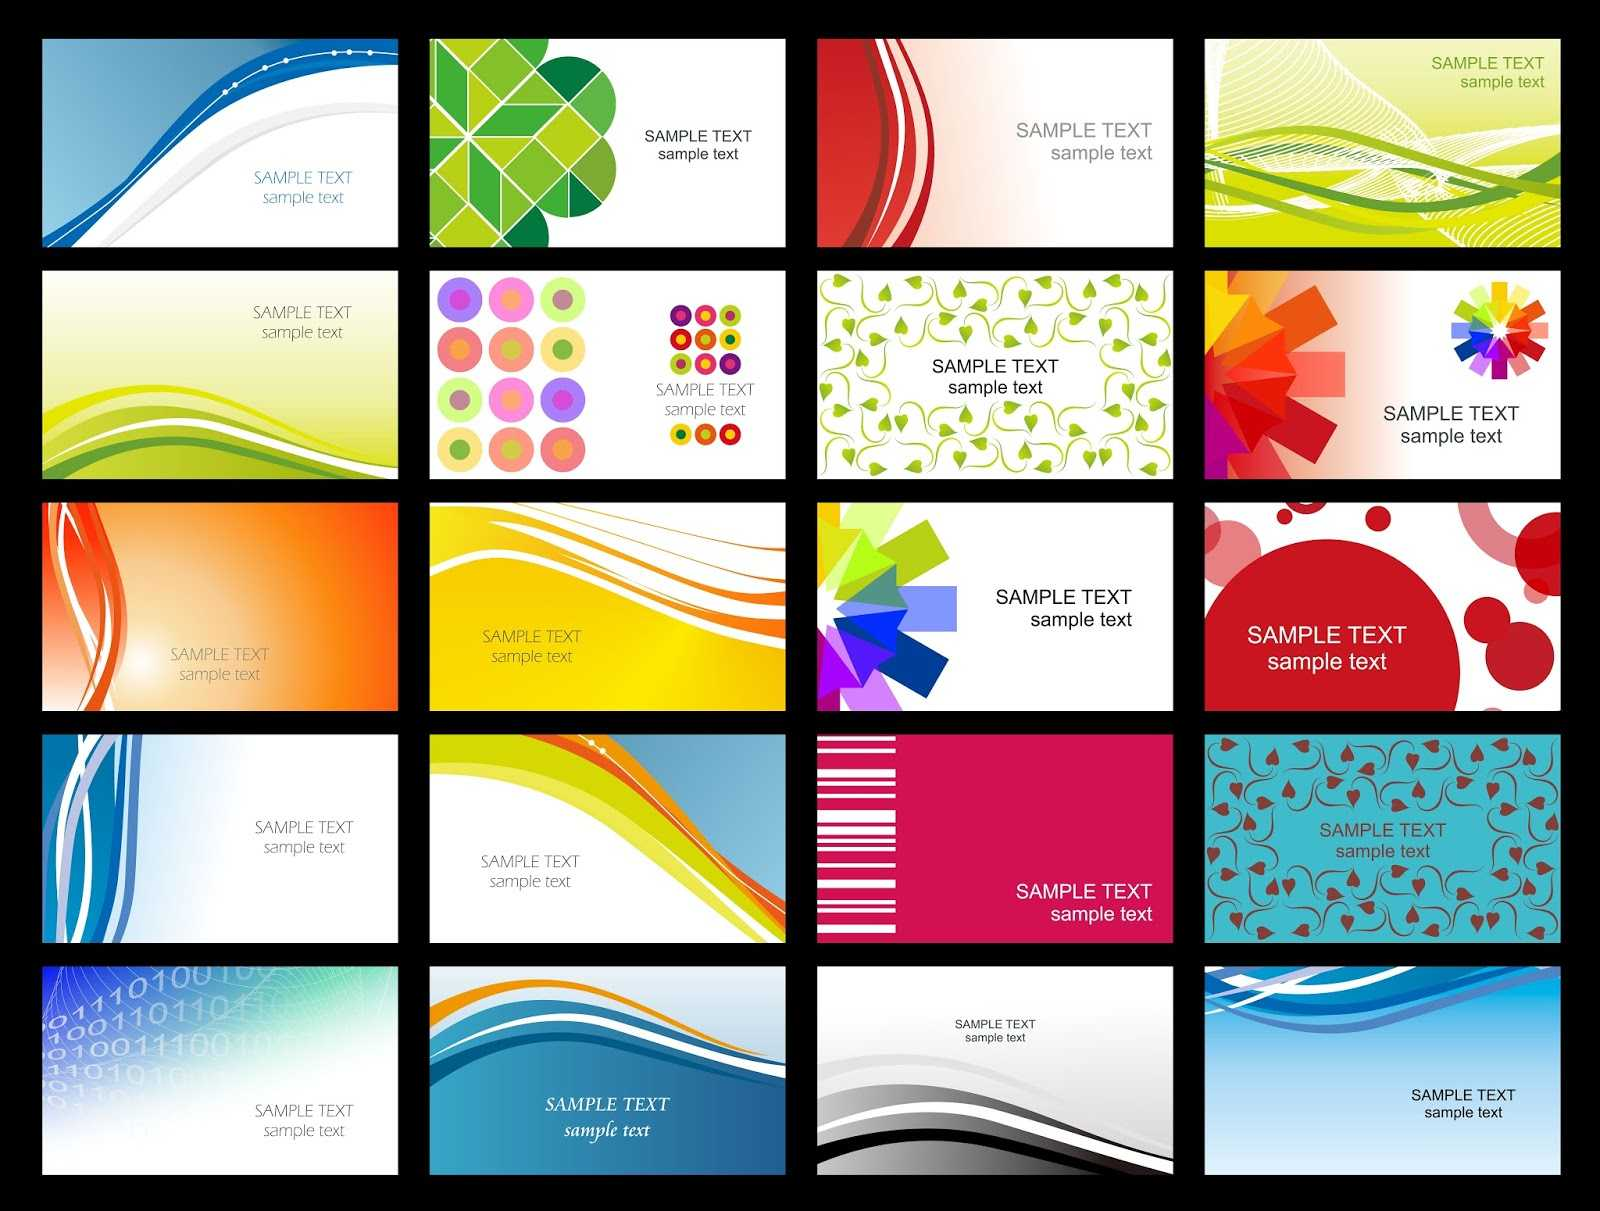 Printable Business Card Template - Business Card Tips Pertaining To Templates For Visiting Cards Free Downloads